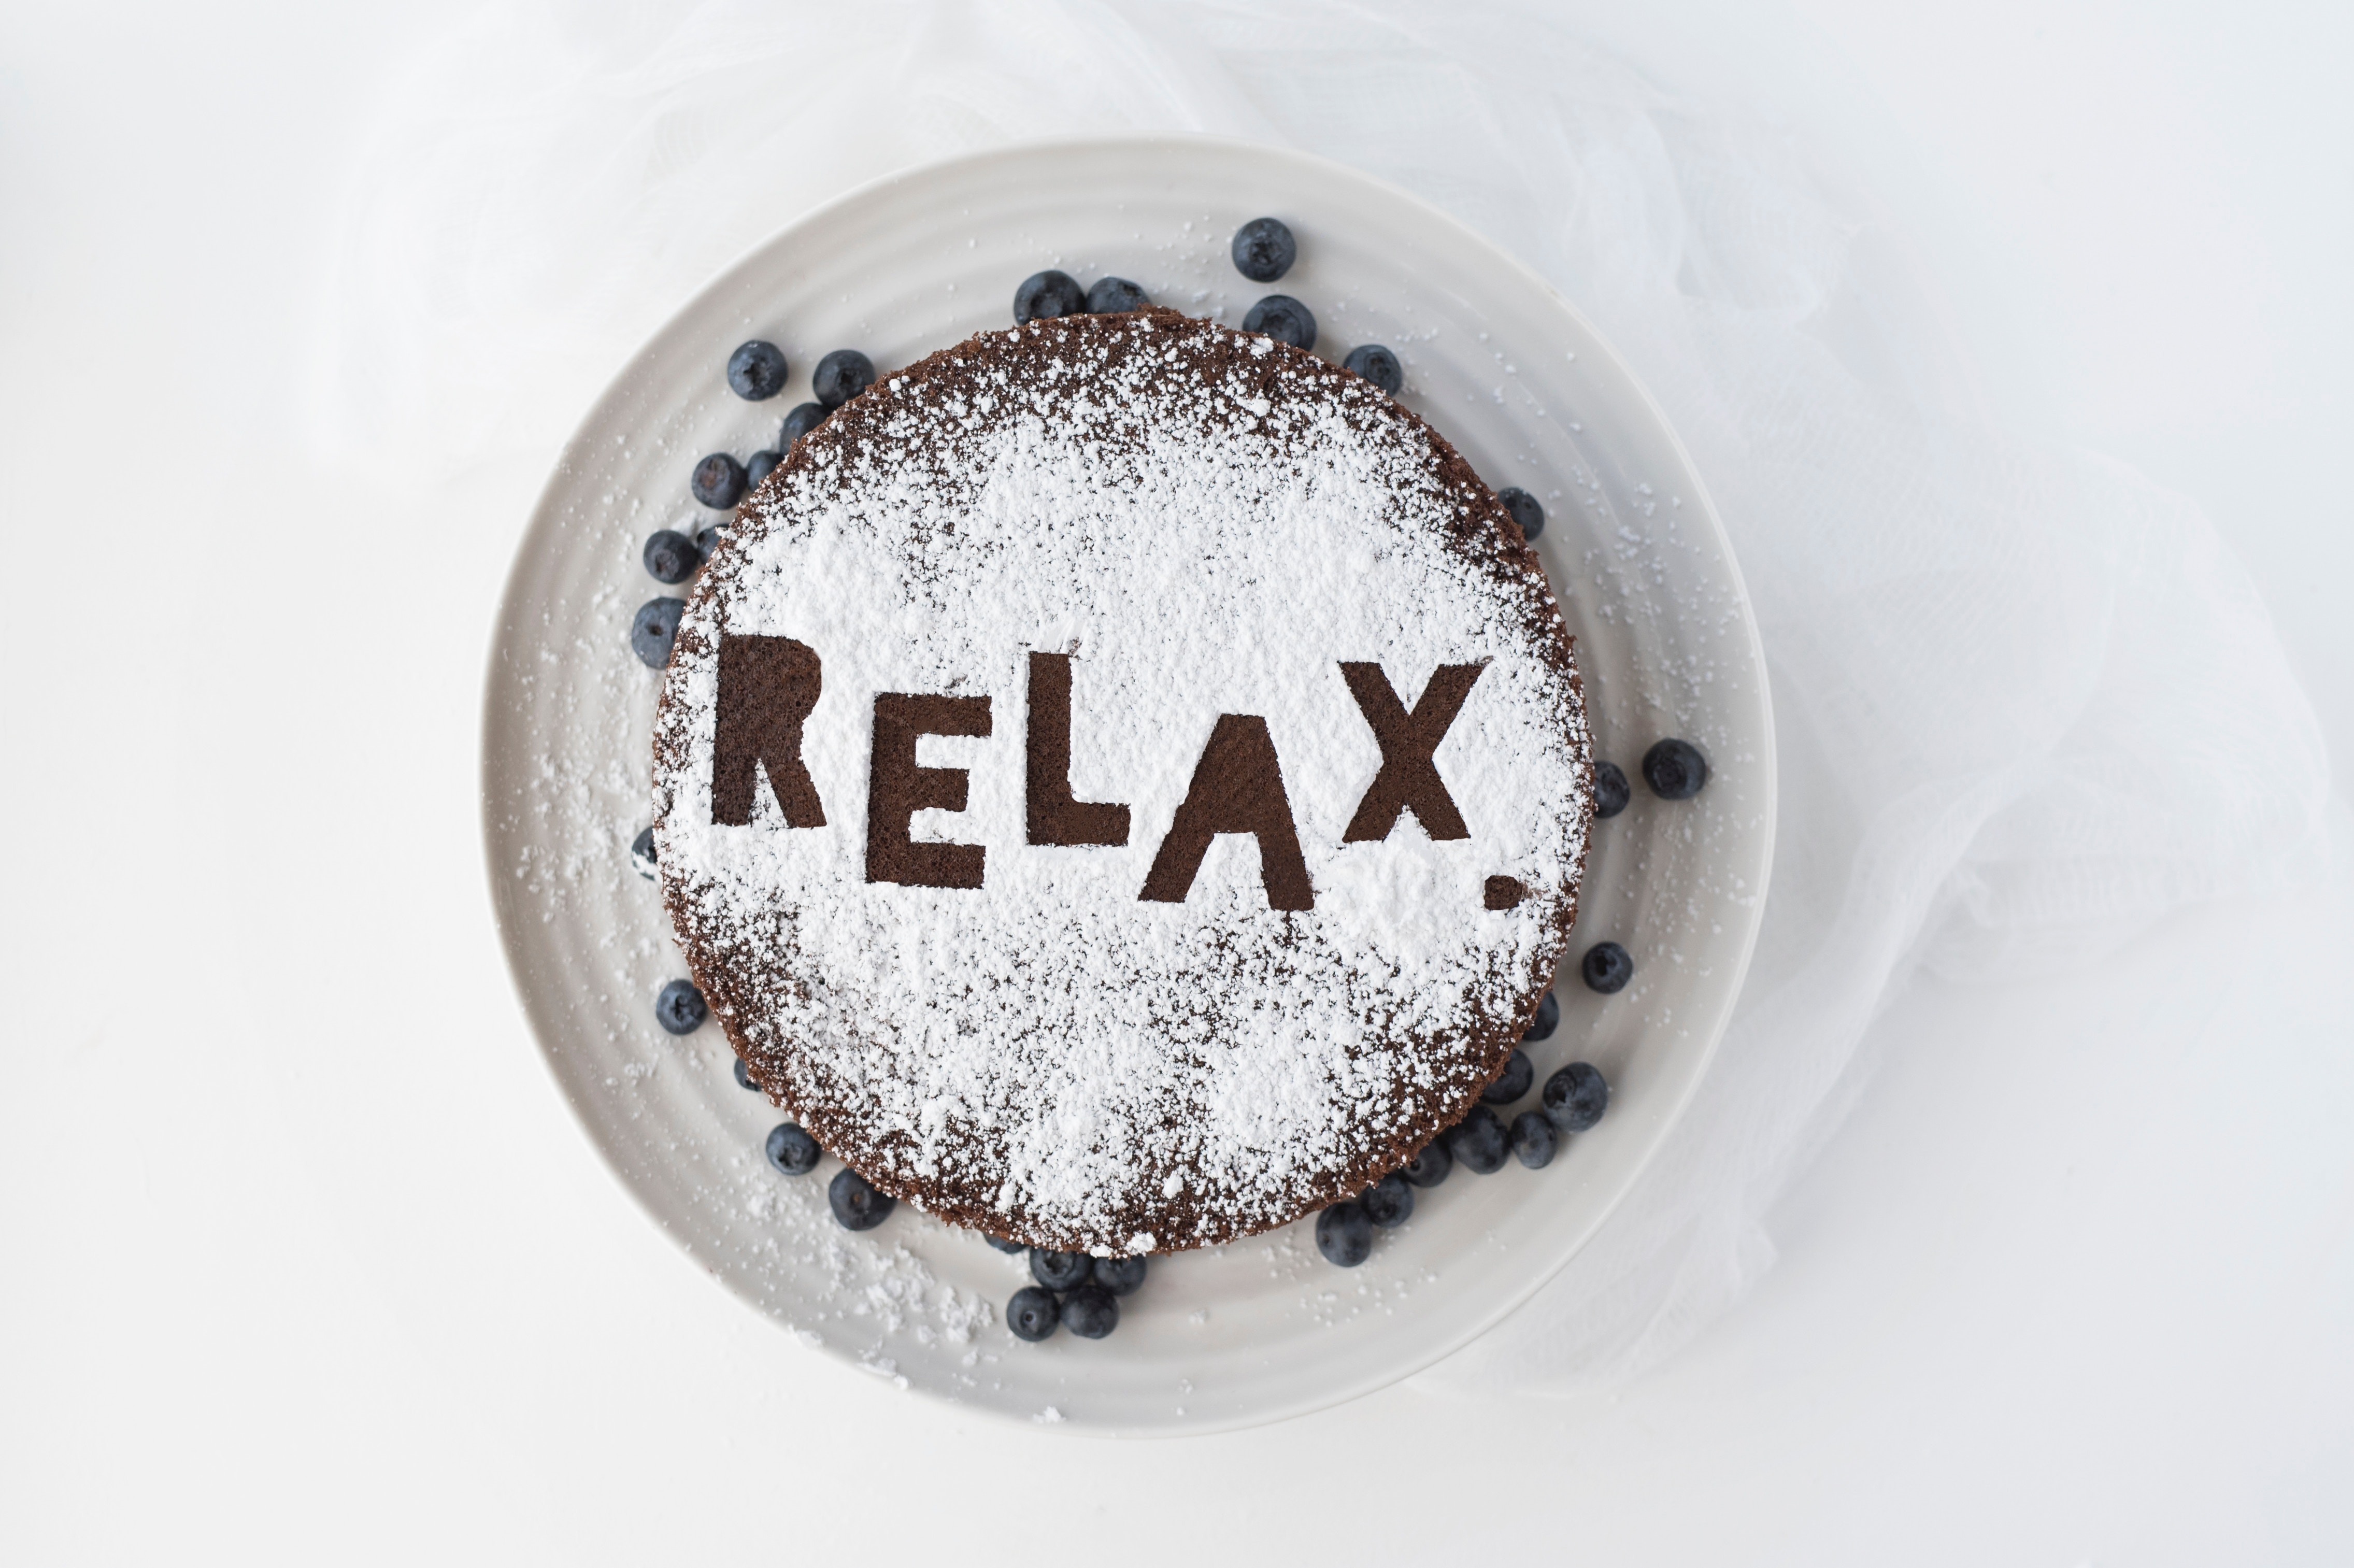 Relax, chill, meditate